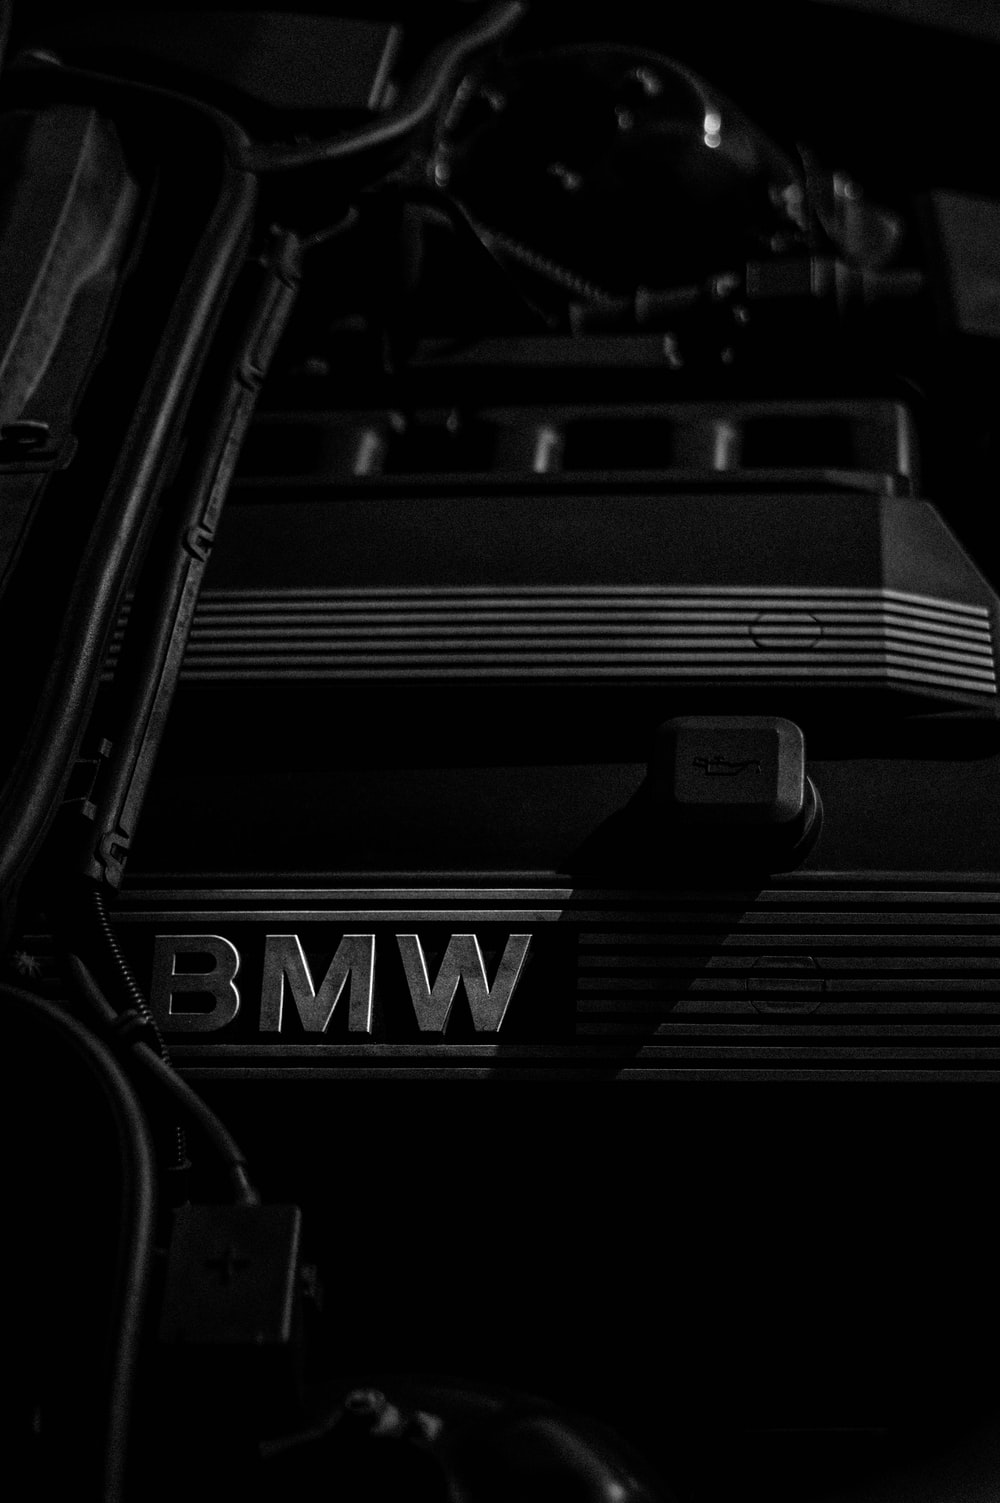 grayscale photography of BMW emblem